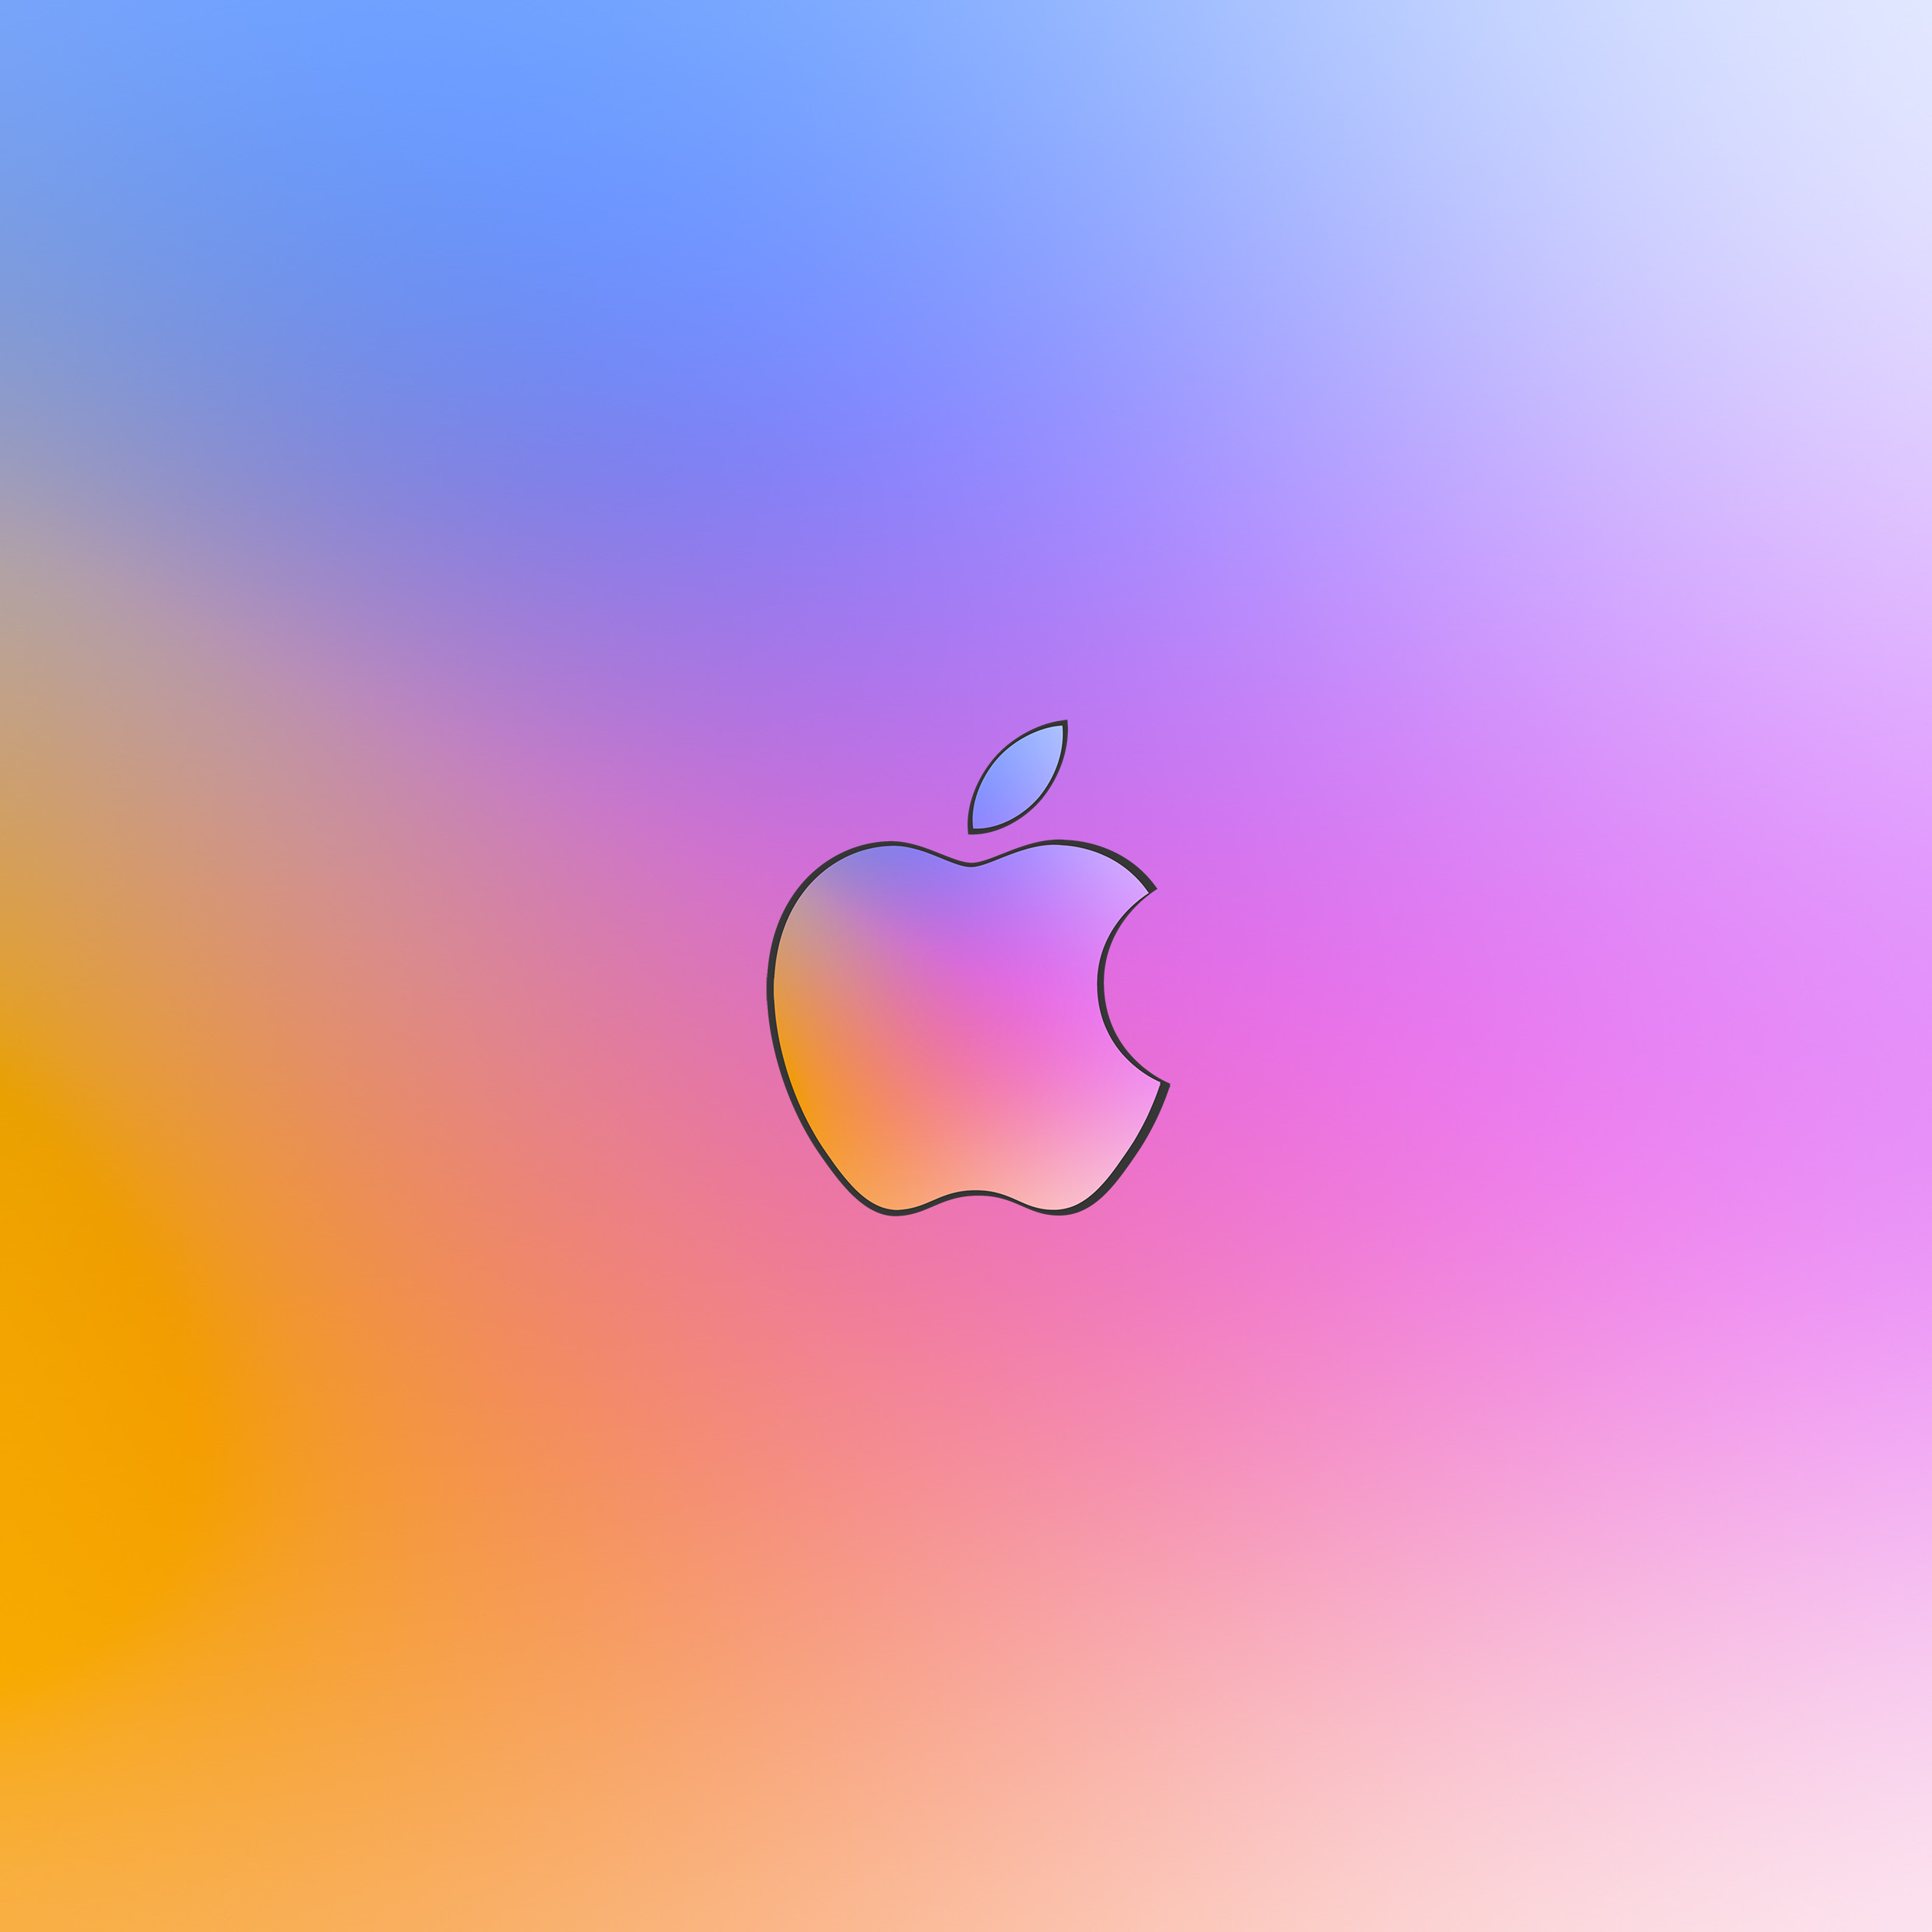 Apple Card wallpapers for iPhone iPad and desktop 2524x2524